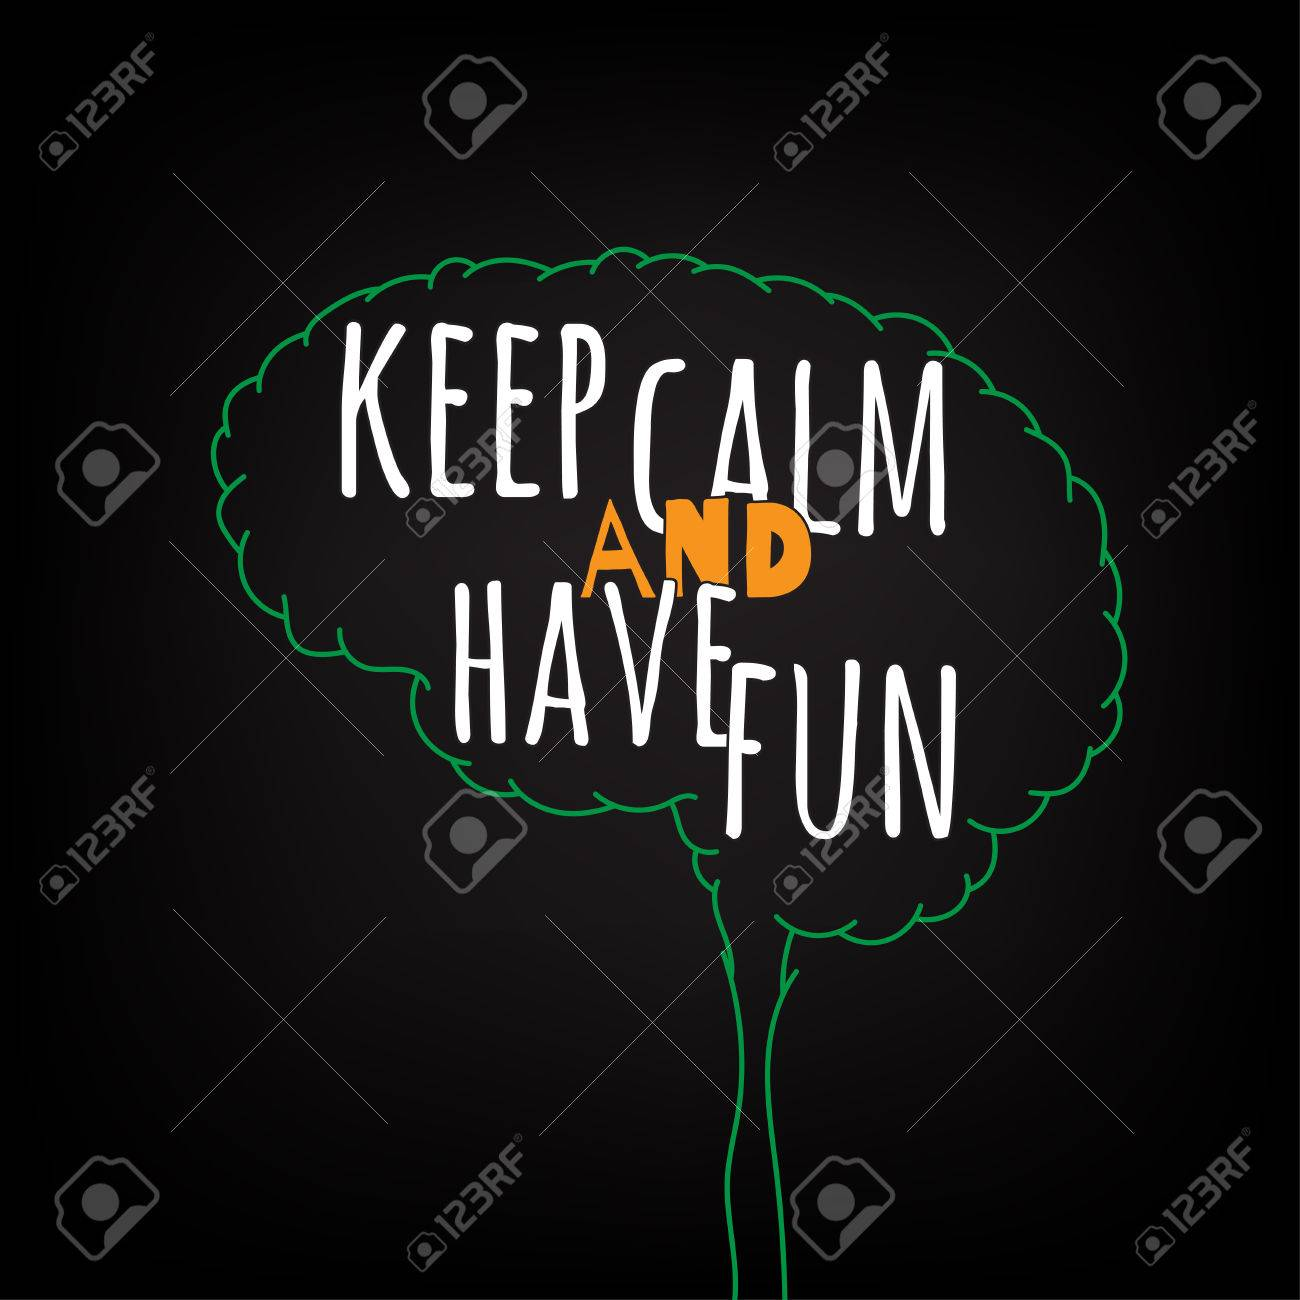 keep calm and have fun motivation clever ideas in the brain poster text lettering of